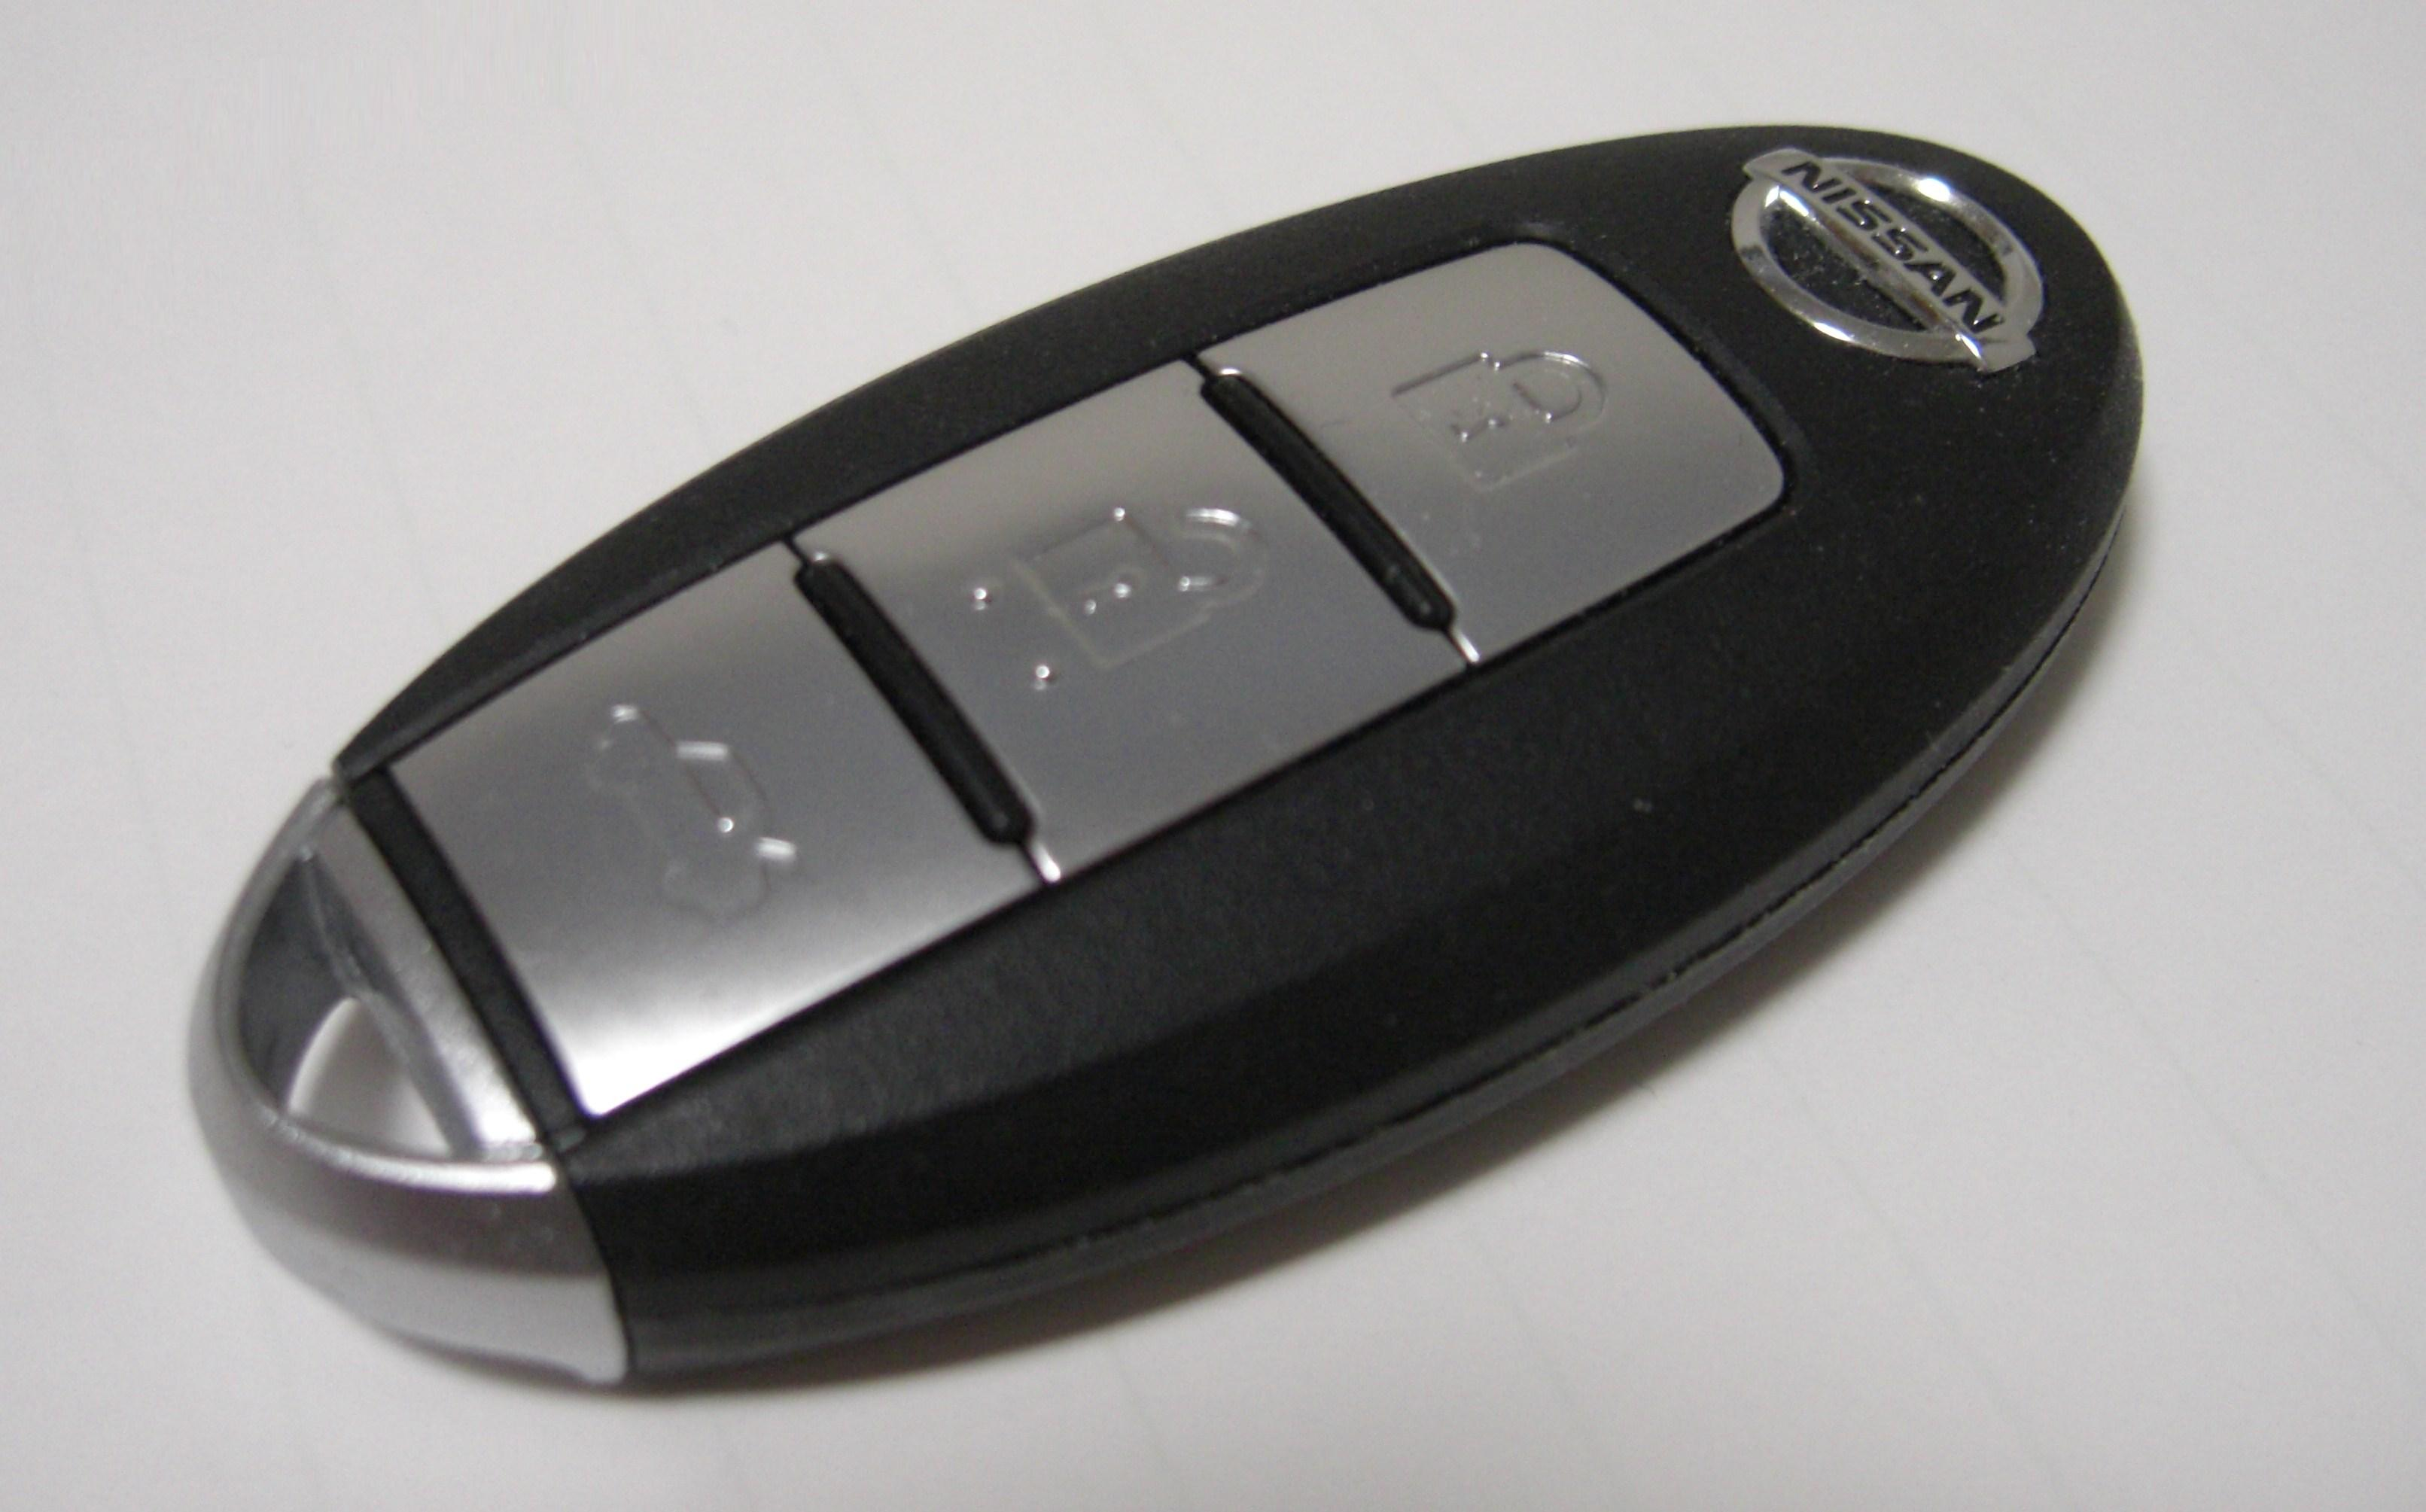 Entry Keyless Remote.